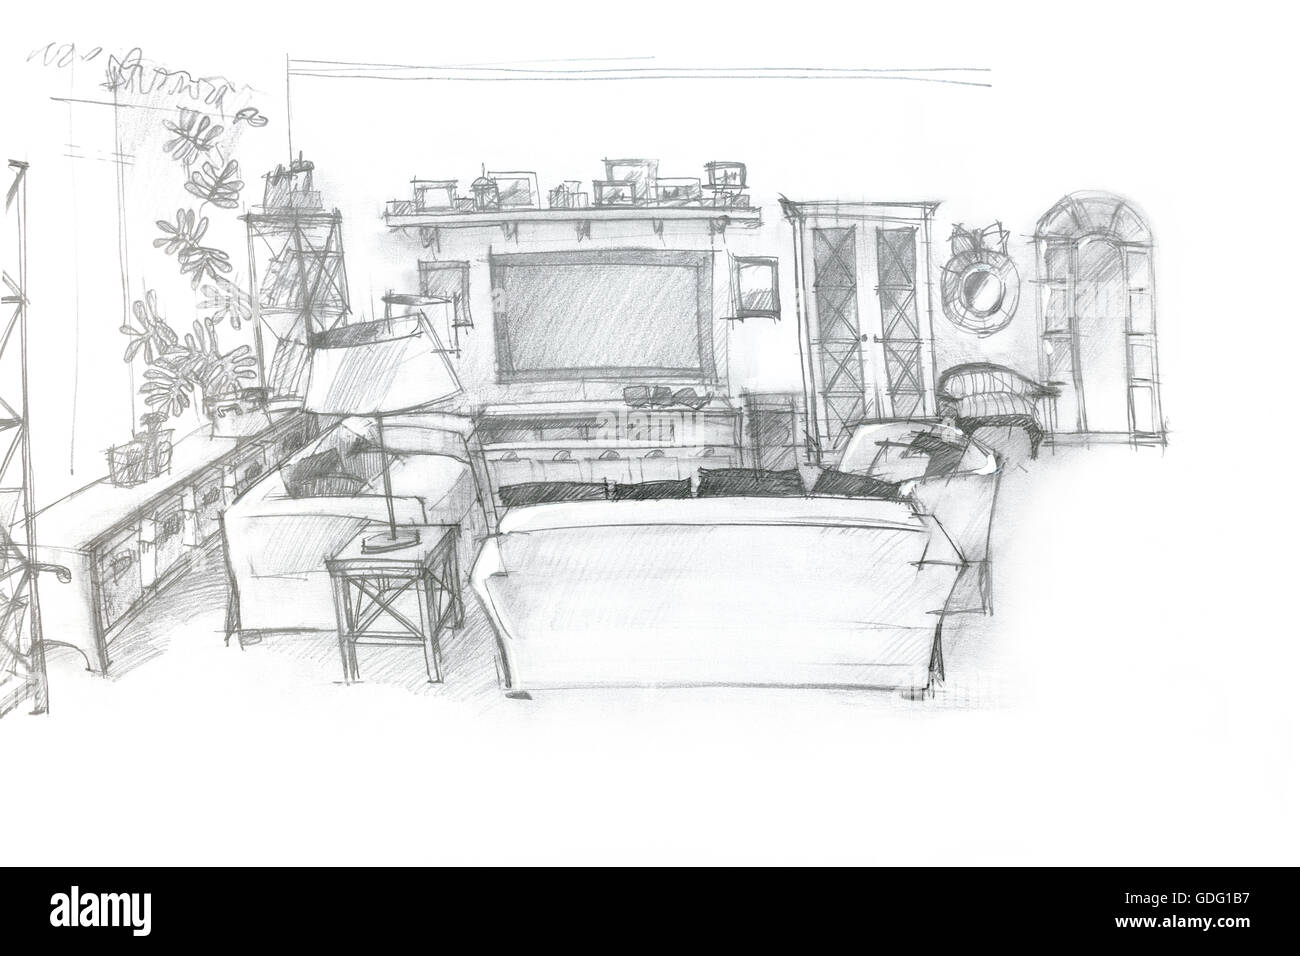 The Line Art And Living : Freehand sketch perspective architectural drawing of living room